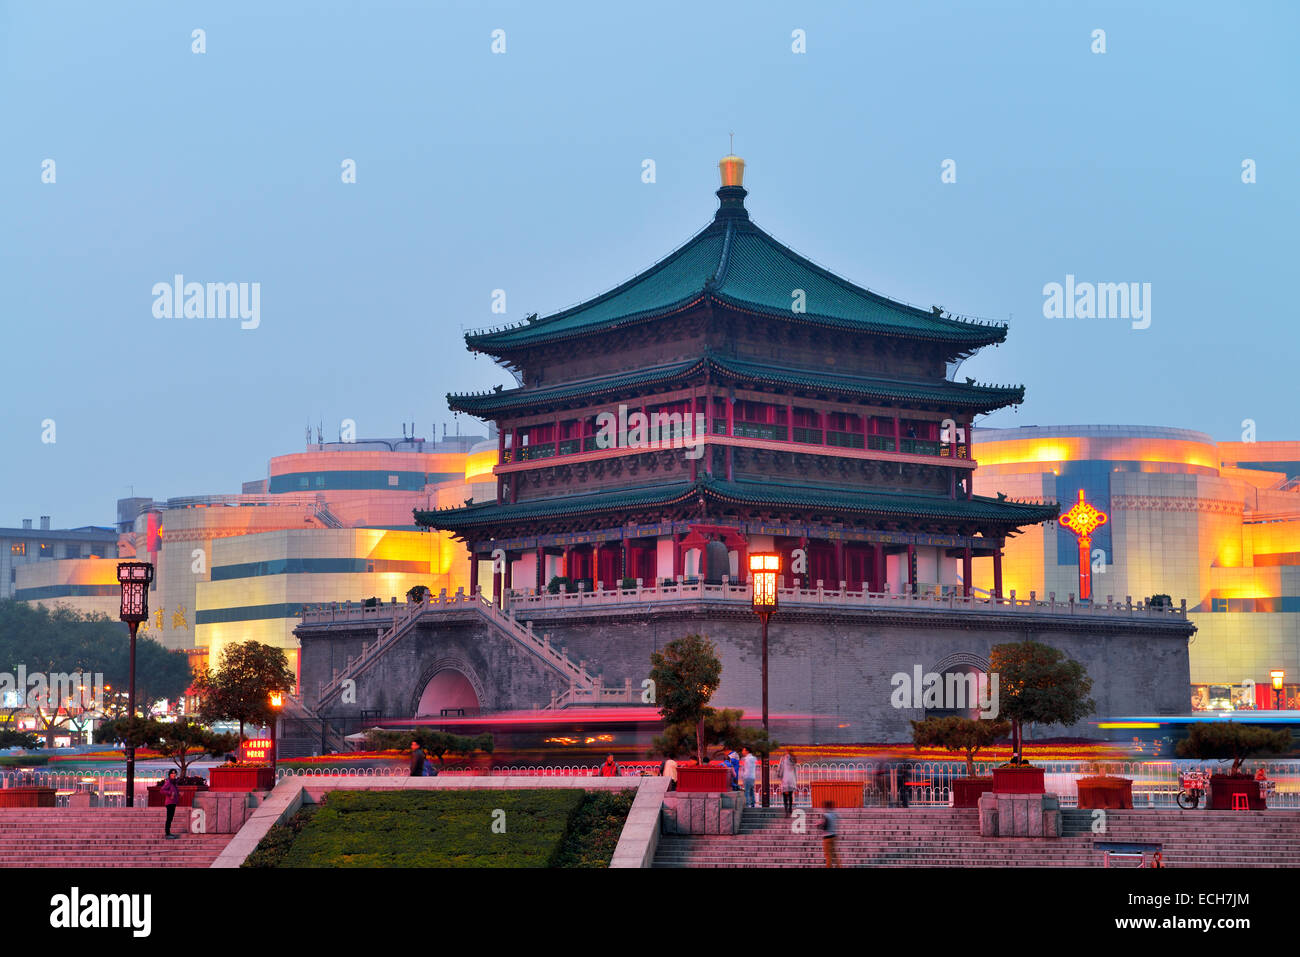 Bell Tower, Xi'an, Shaanxi Province, China - Stock Image